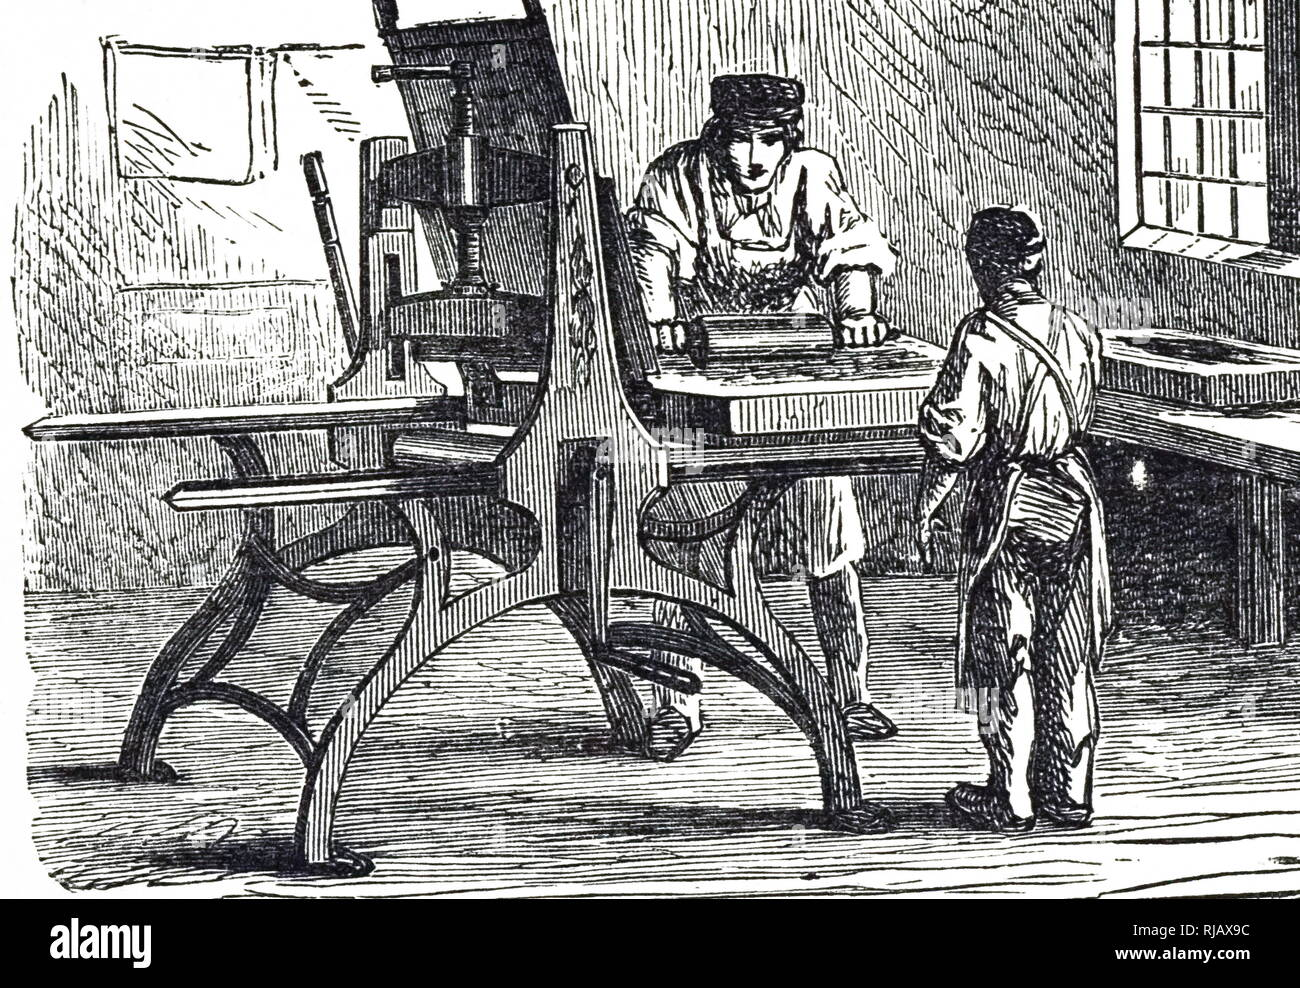 An engraving depicting a lithographic printing press. Dated 19th century - Stock Image